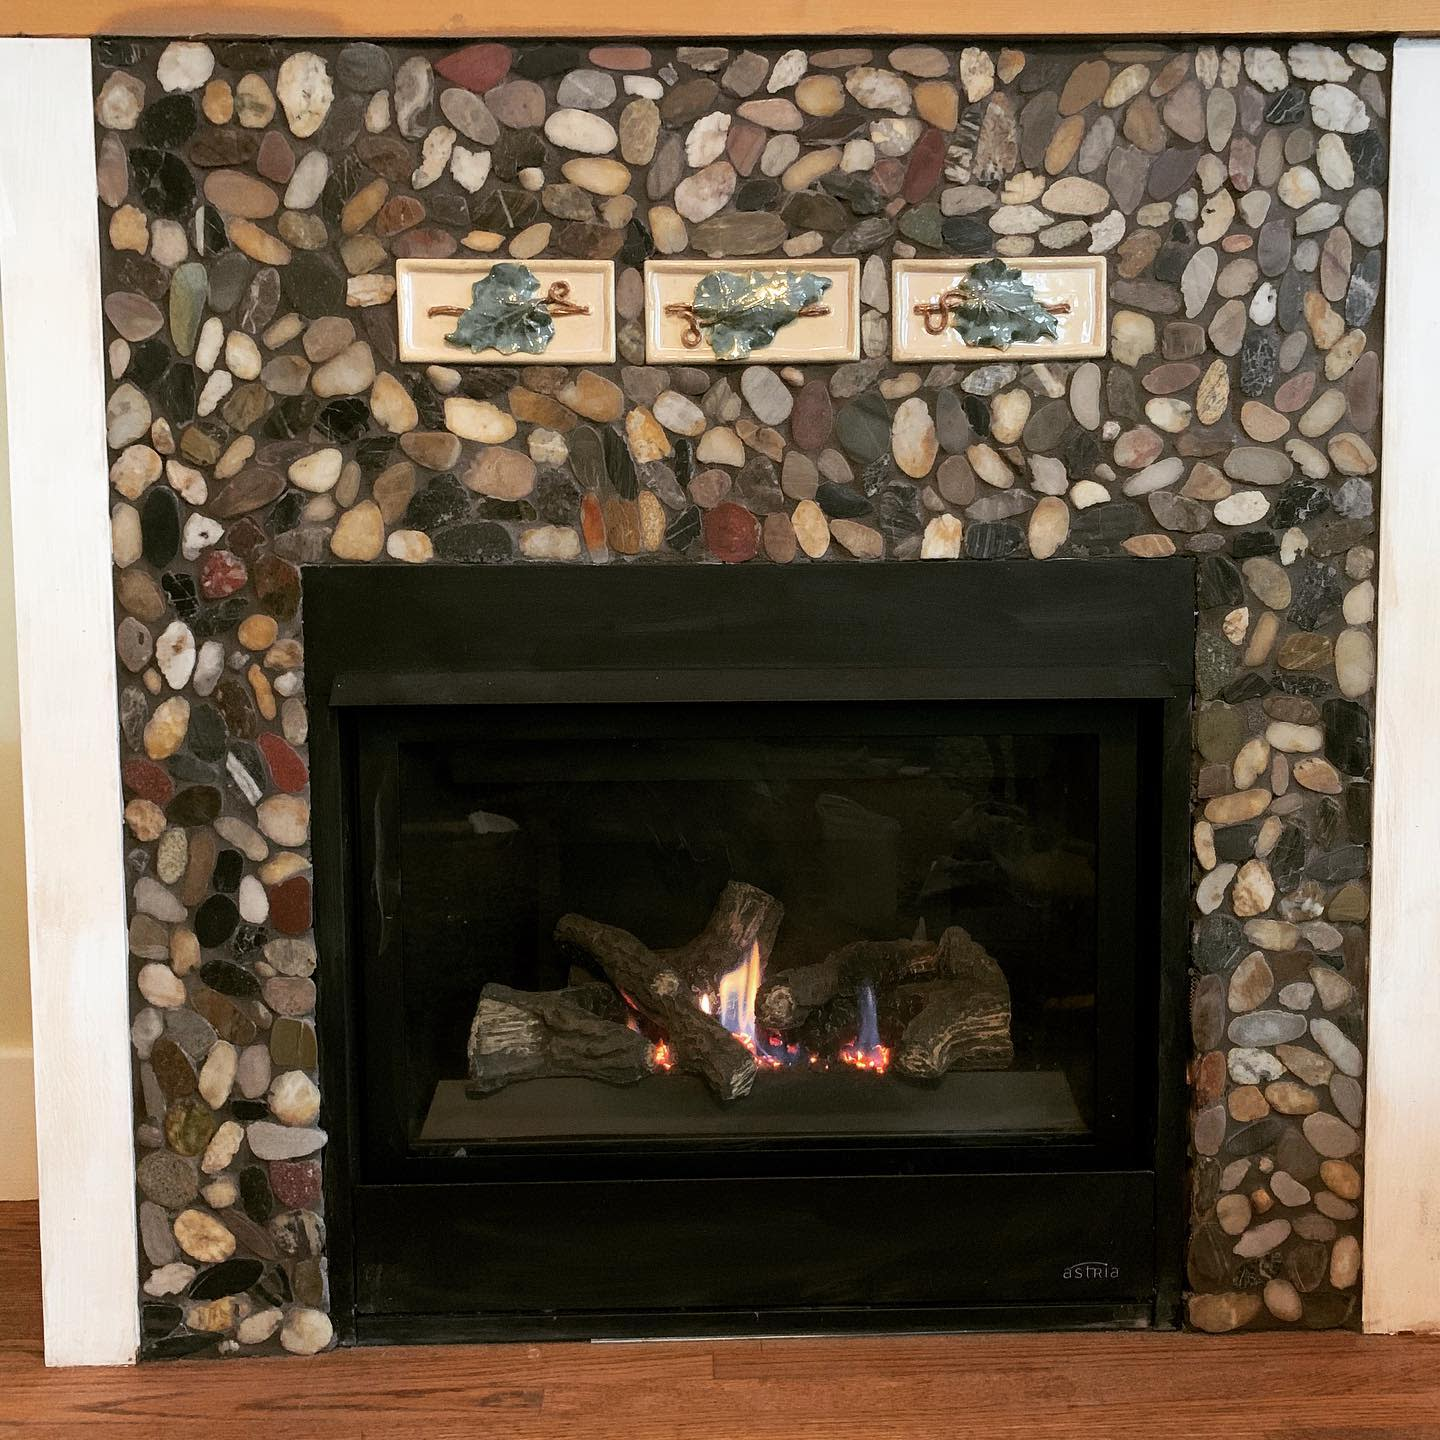 Mosaic Fireplace Hearth Ideas -shattered.images